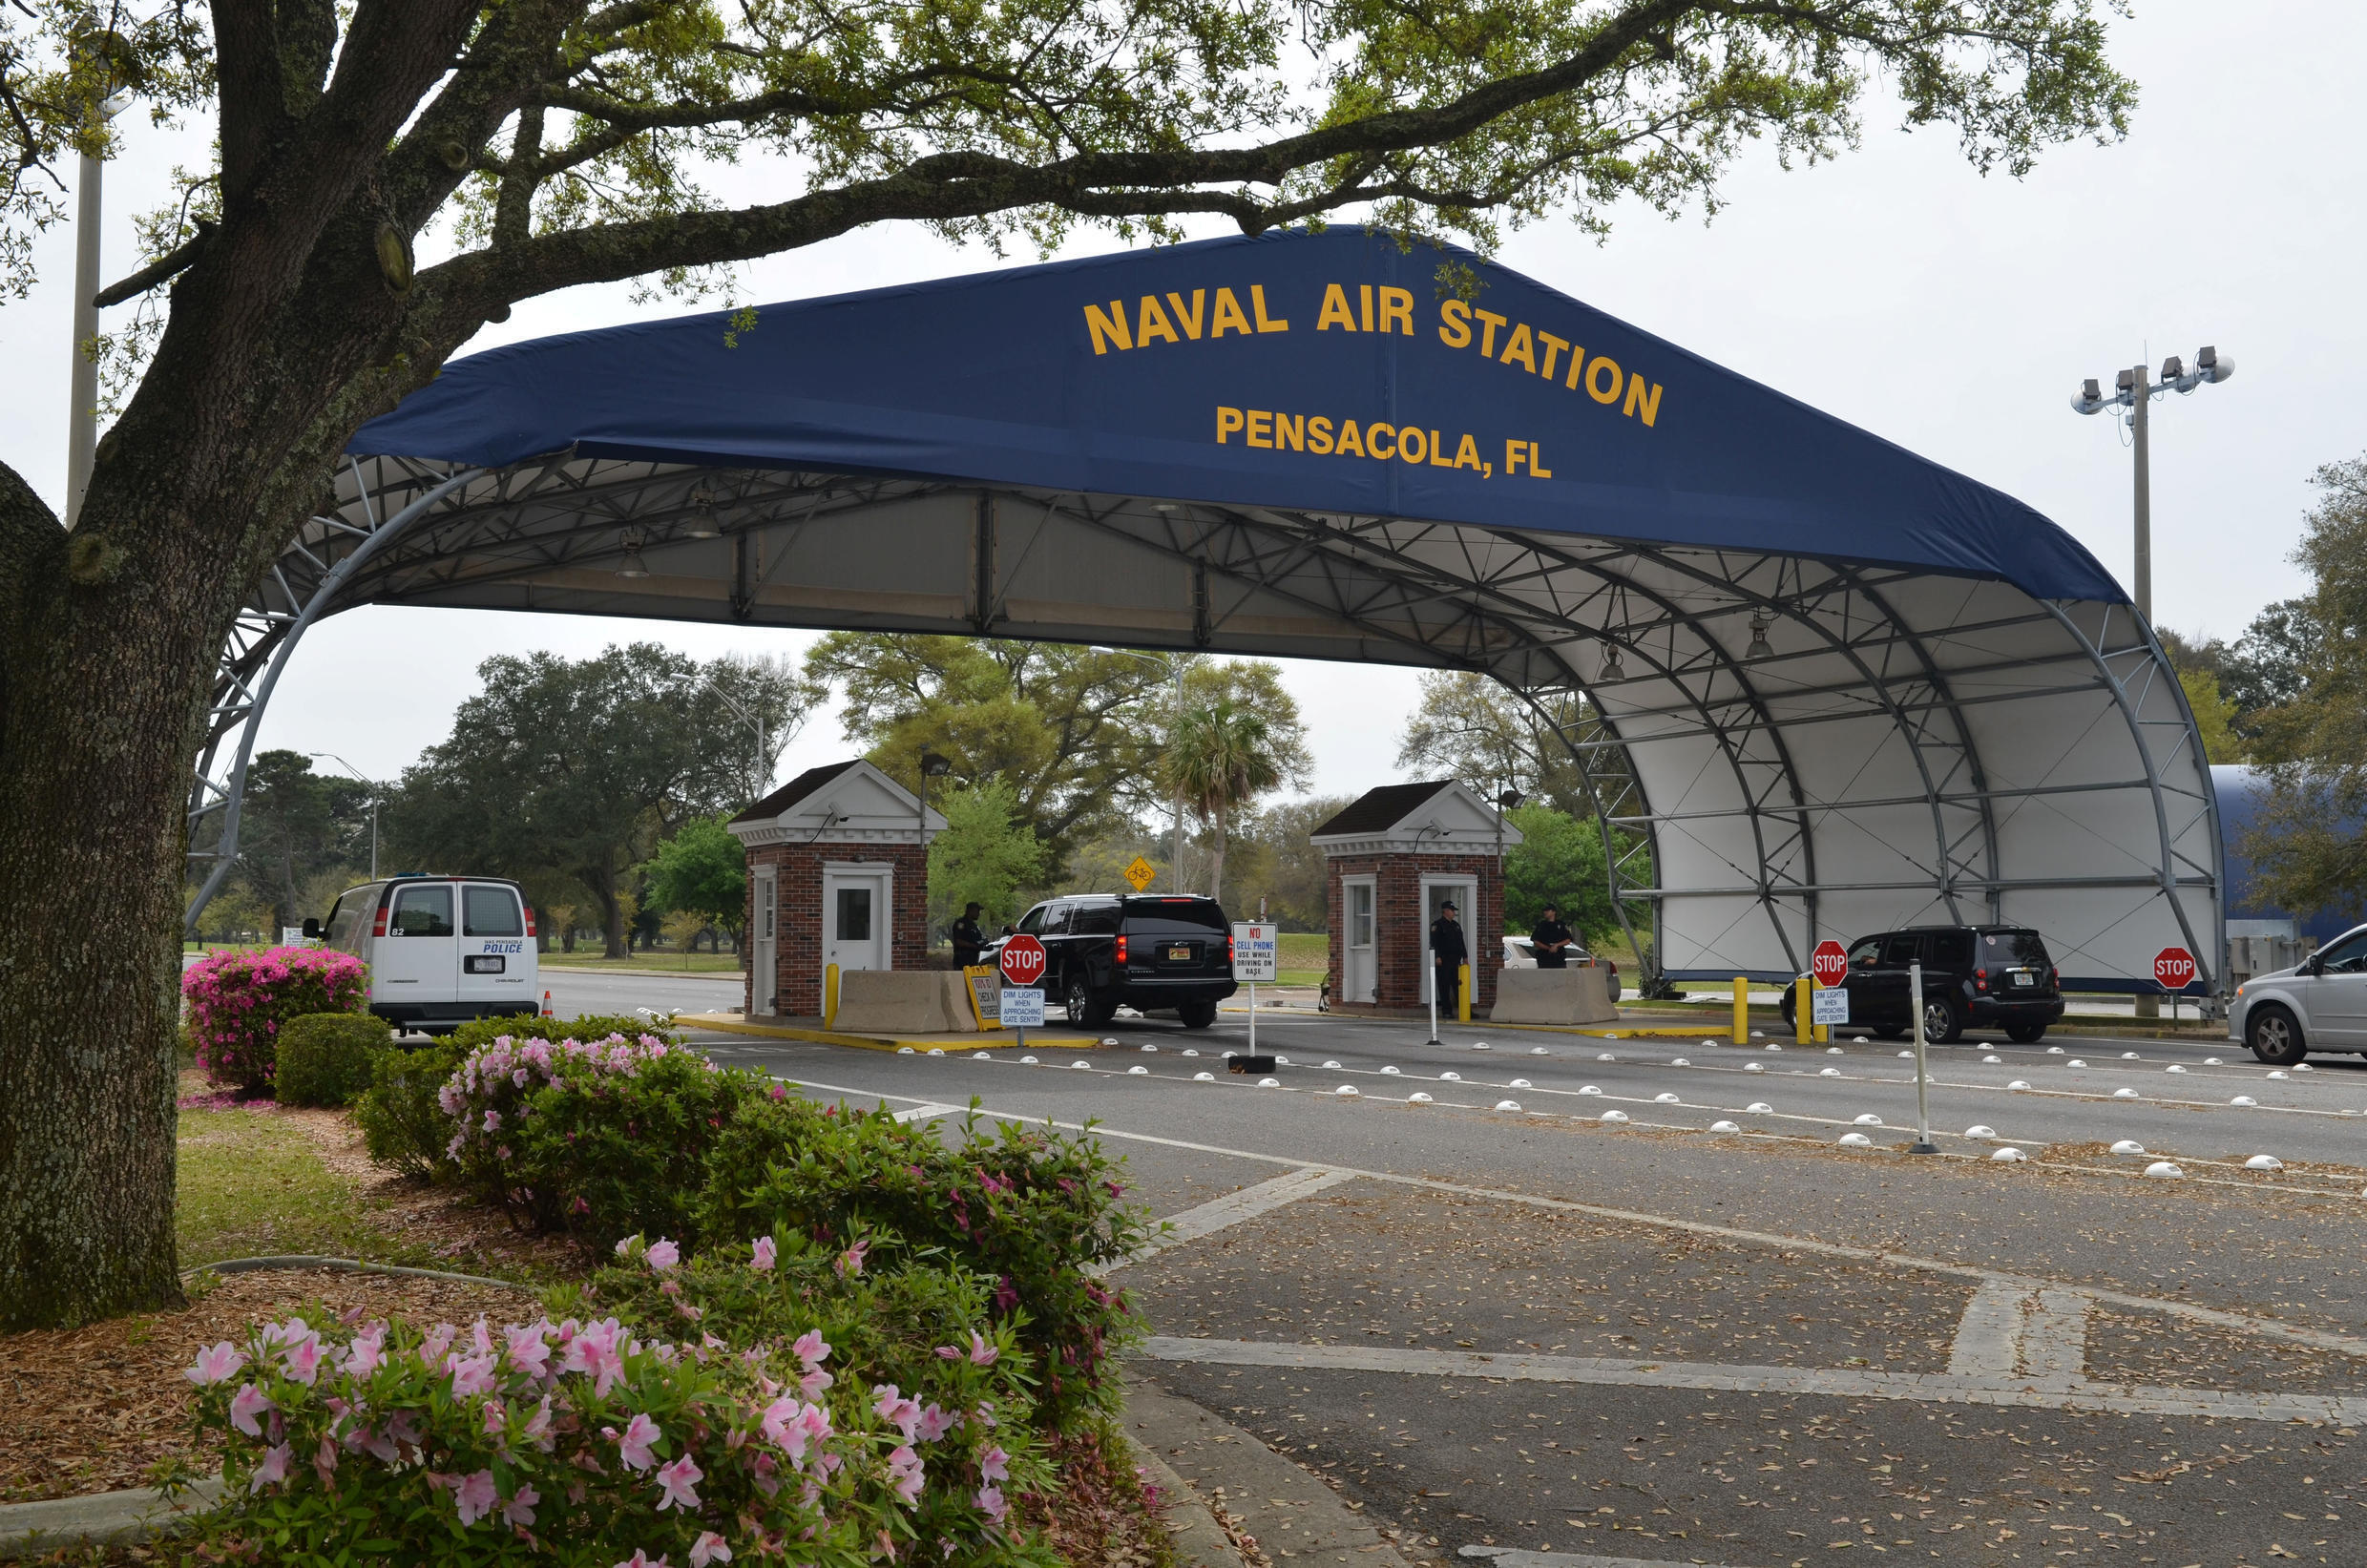 Naval Air Station Pensacola in Florida, where the deadly shooting took place last December.